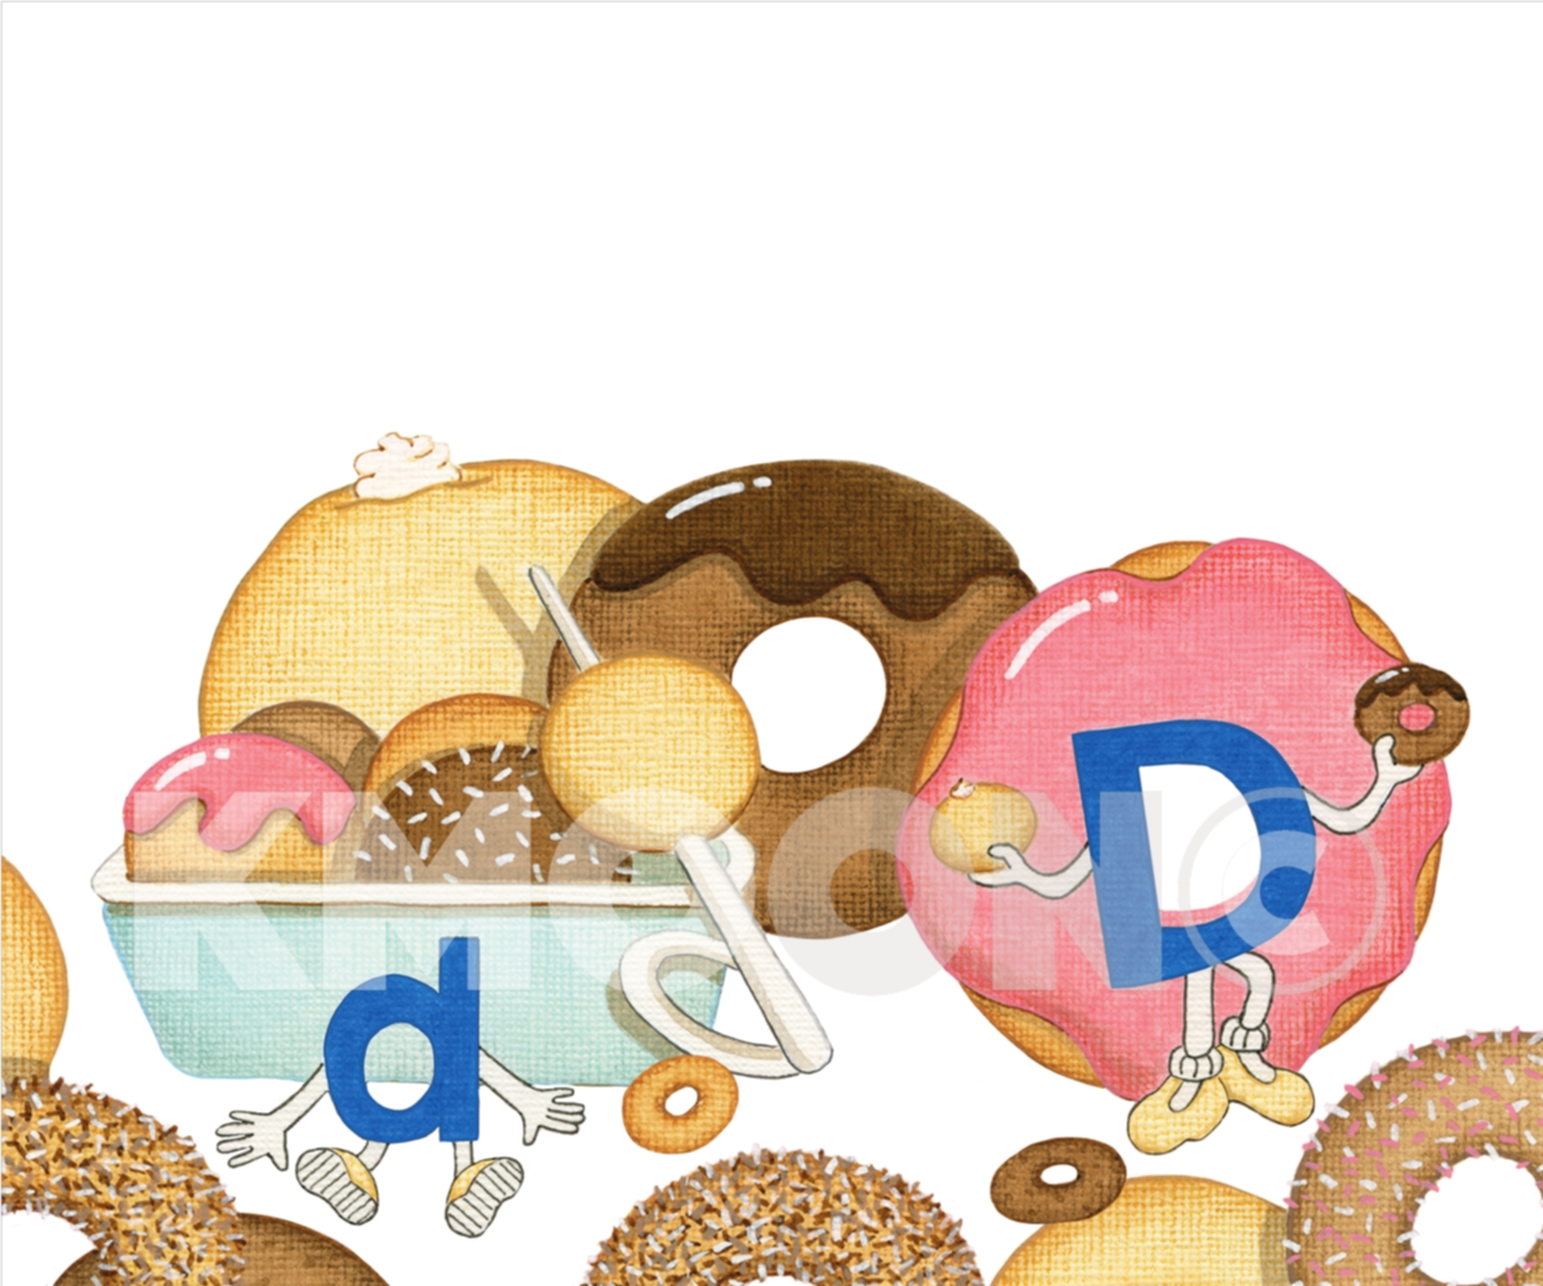 Dd is for ... doughnut